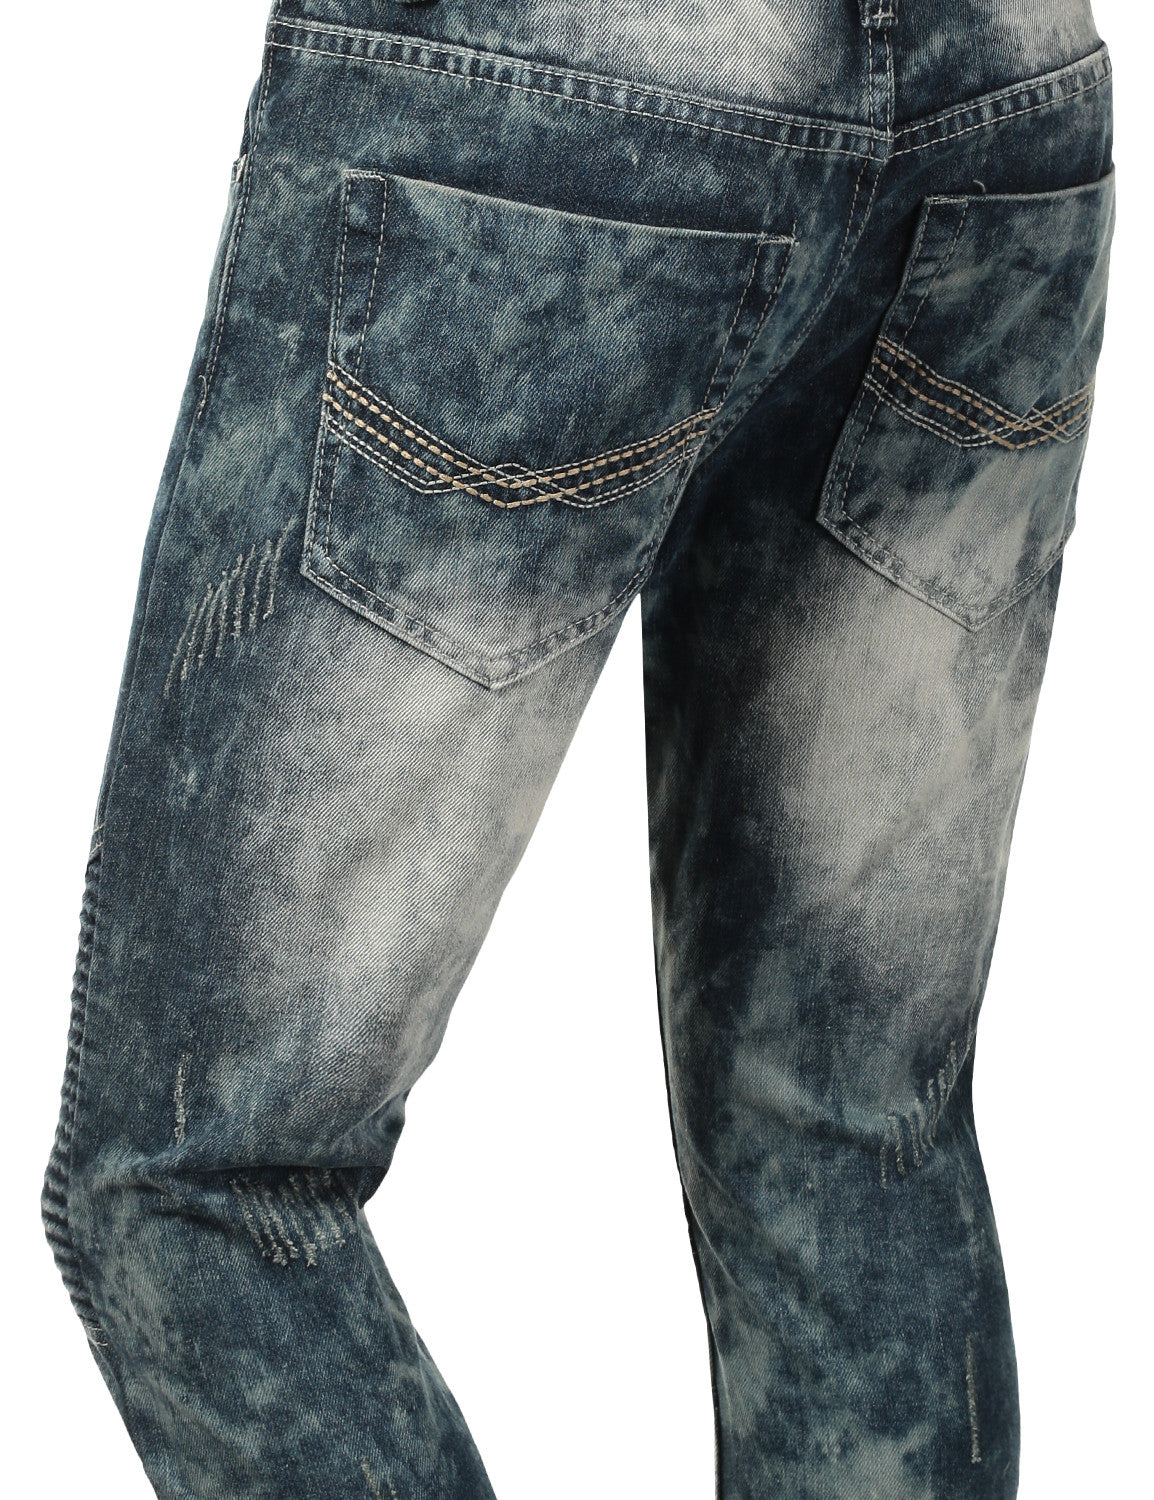 Distressed Rib Biker Jean- Slim Taper Fit - URBANCREWS - 12